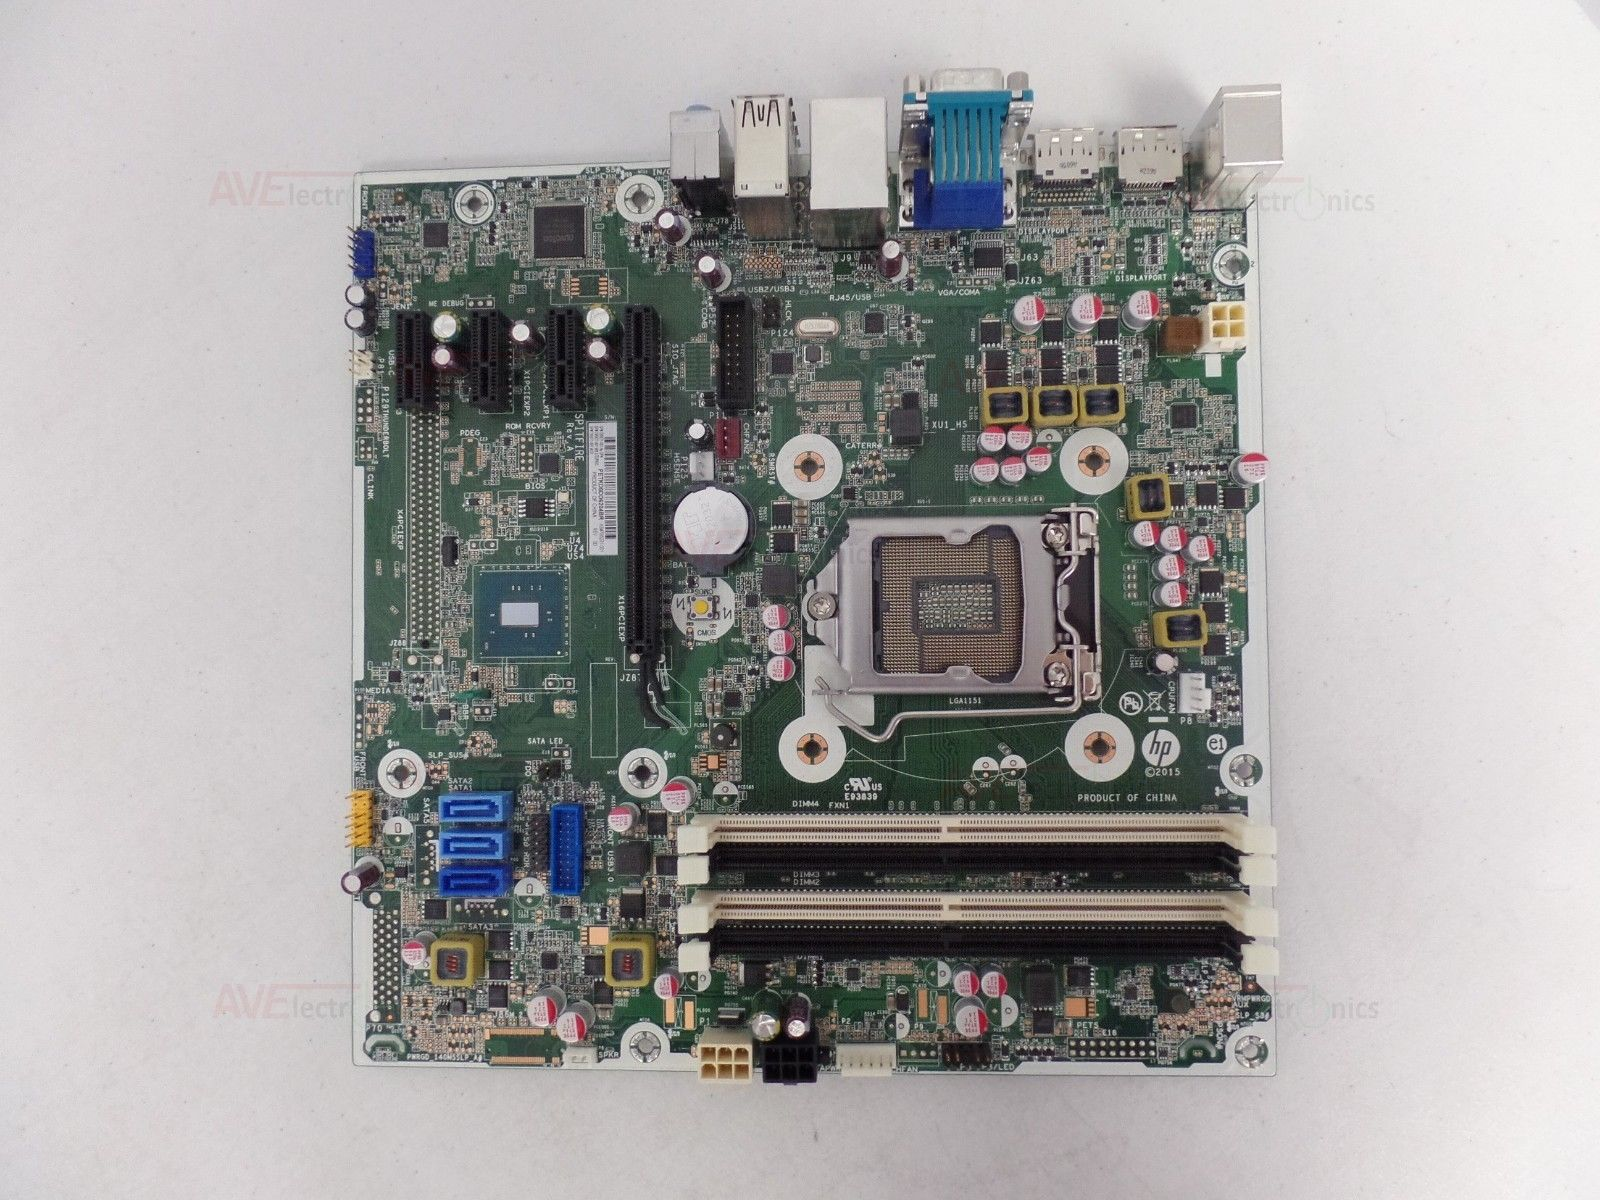 Genuine 795971-601, System board with Win8 Pro DPK for HP ProDesk 600 G2 MT/SFF